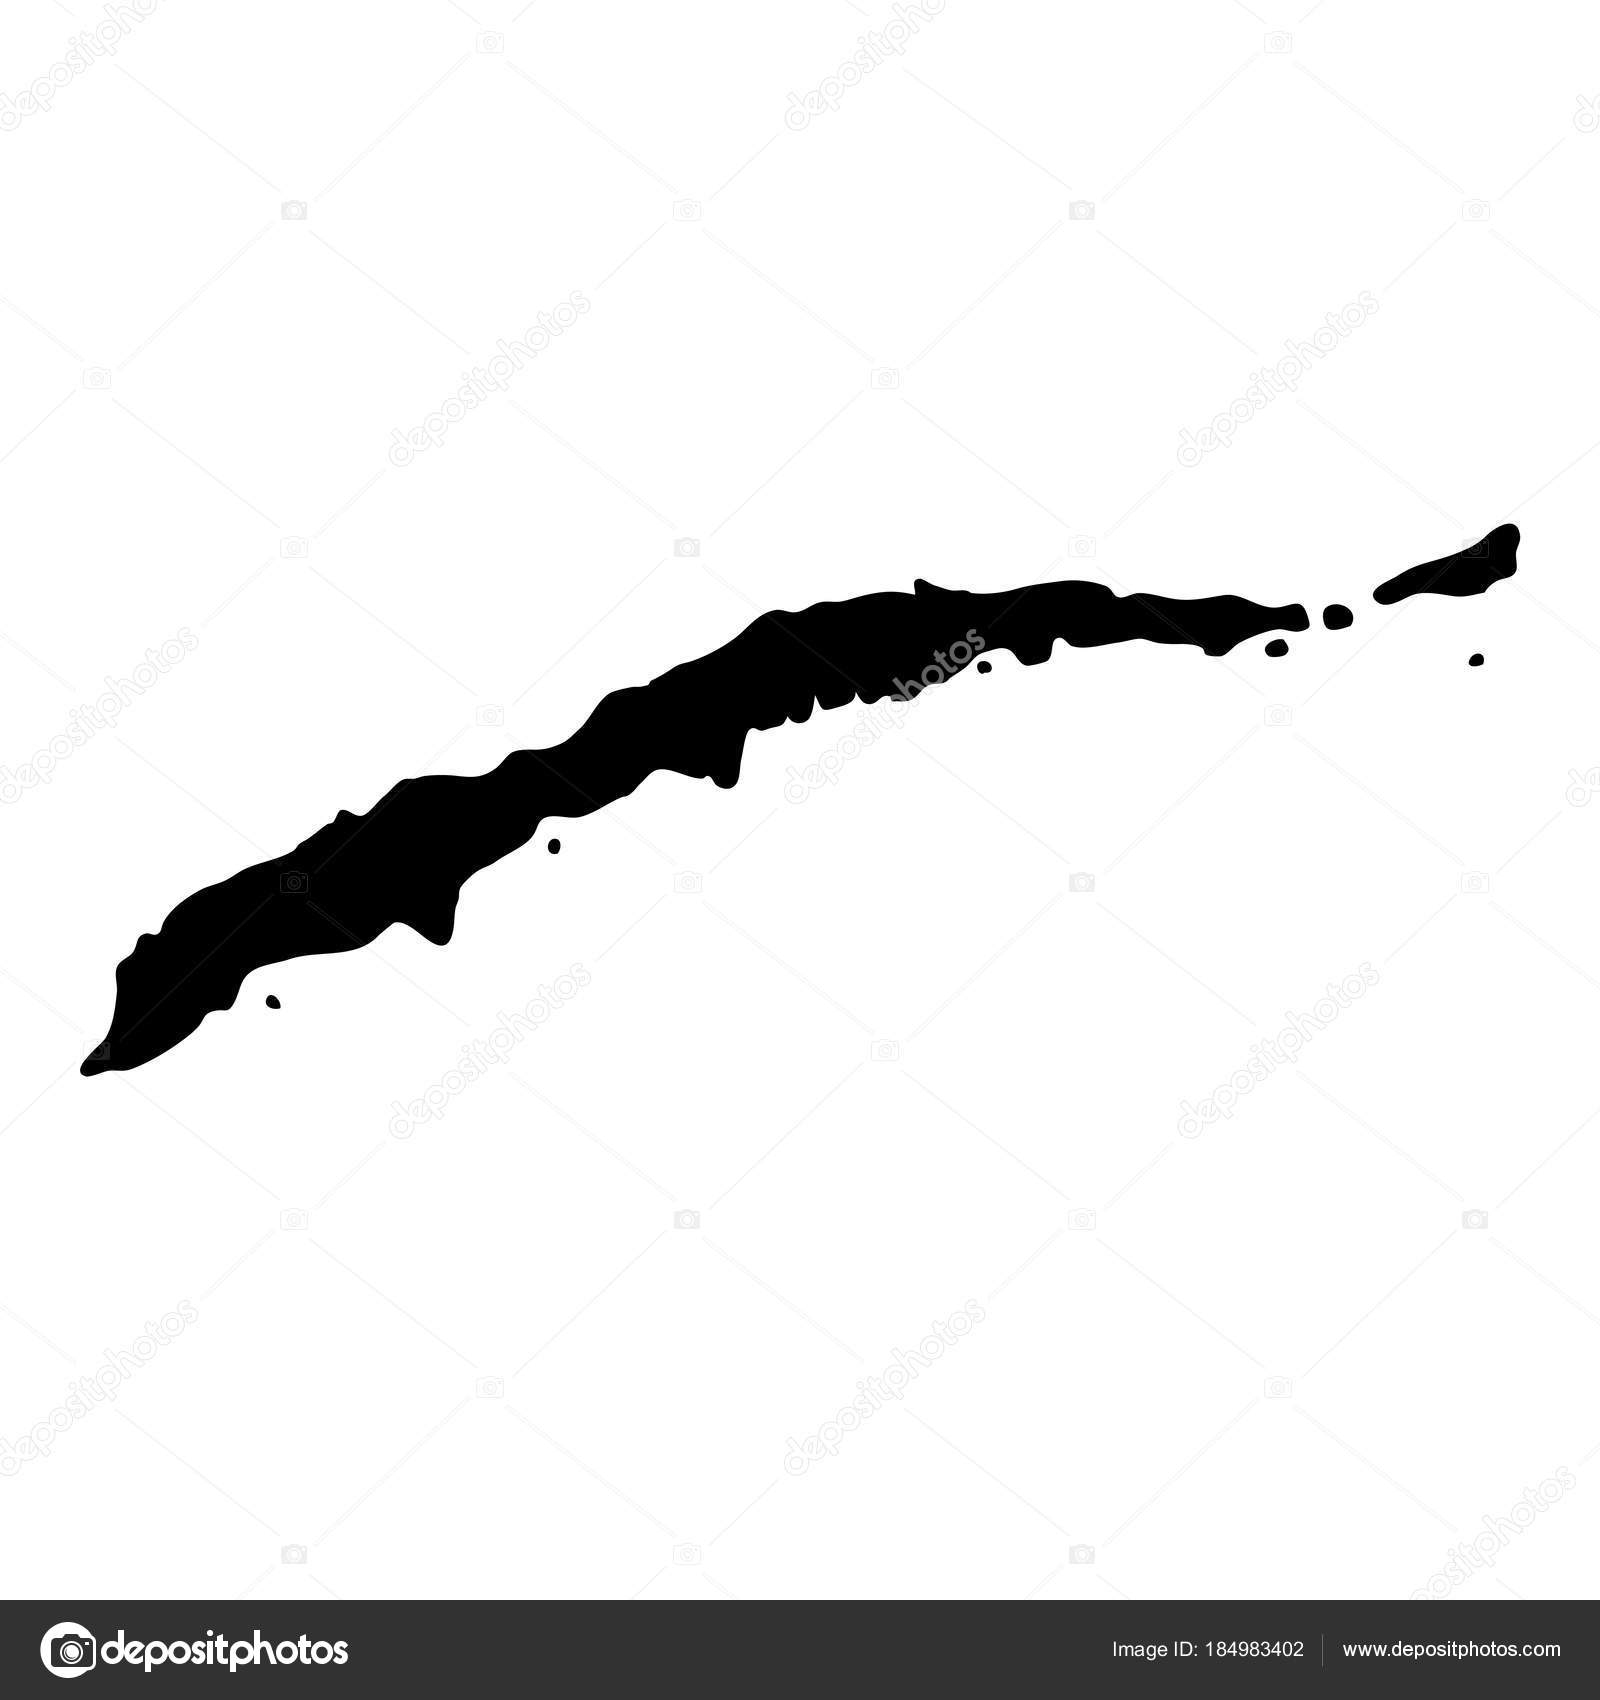 Roatan map Island silhouette icon Isolated Roatan